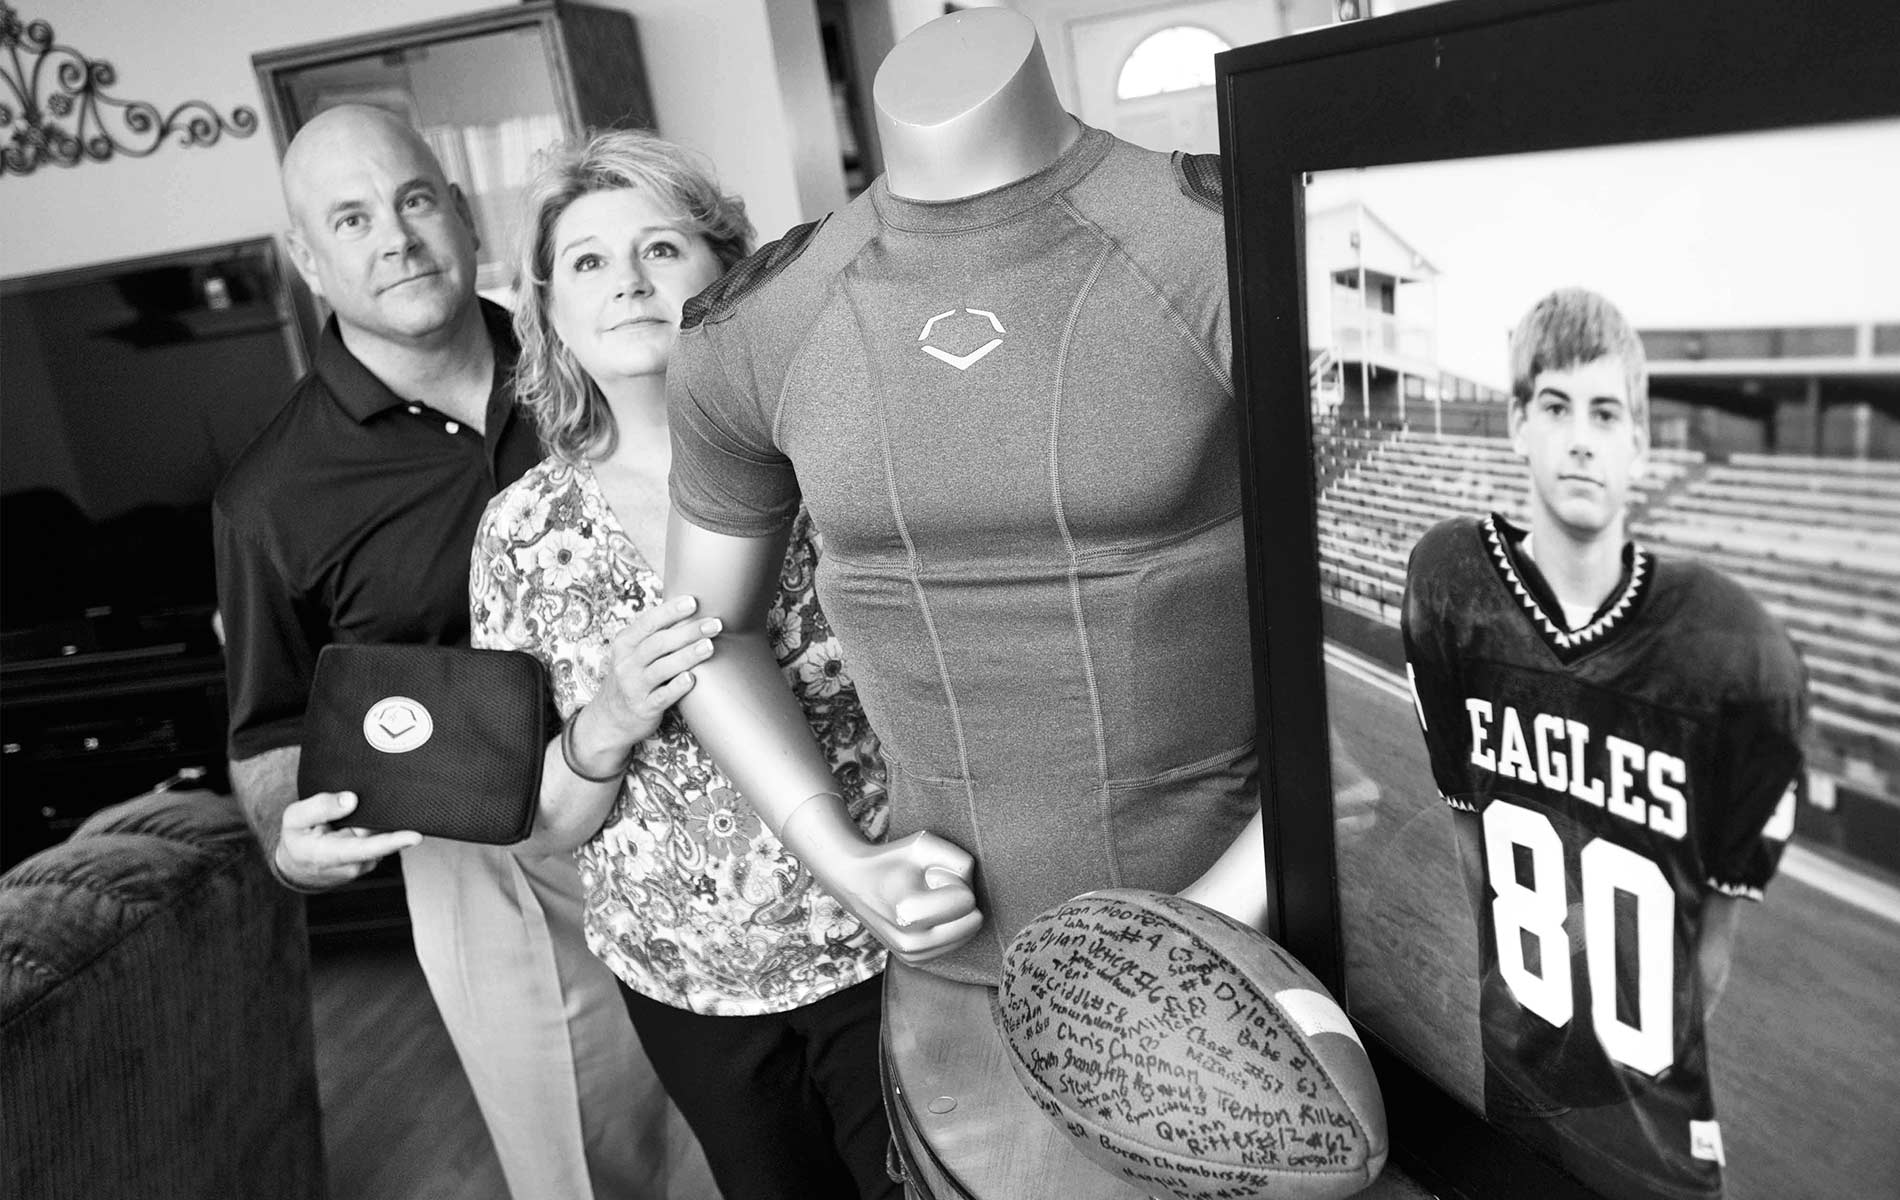 Brian and Kathy Haugen display the rib-protecting shirt that could have saved their son's life. Now they dedicate funds from the Taylor Haugen Foundation to equipping young athletes with this and other protective gear. | Photo courtesy of Taylor Haugen Foundation